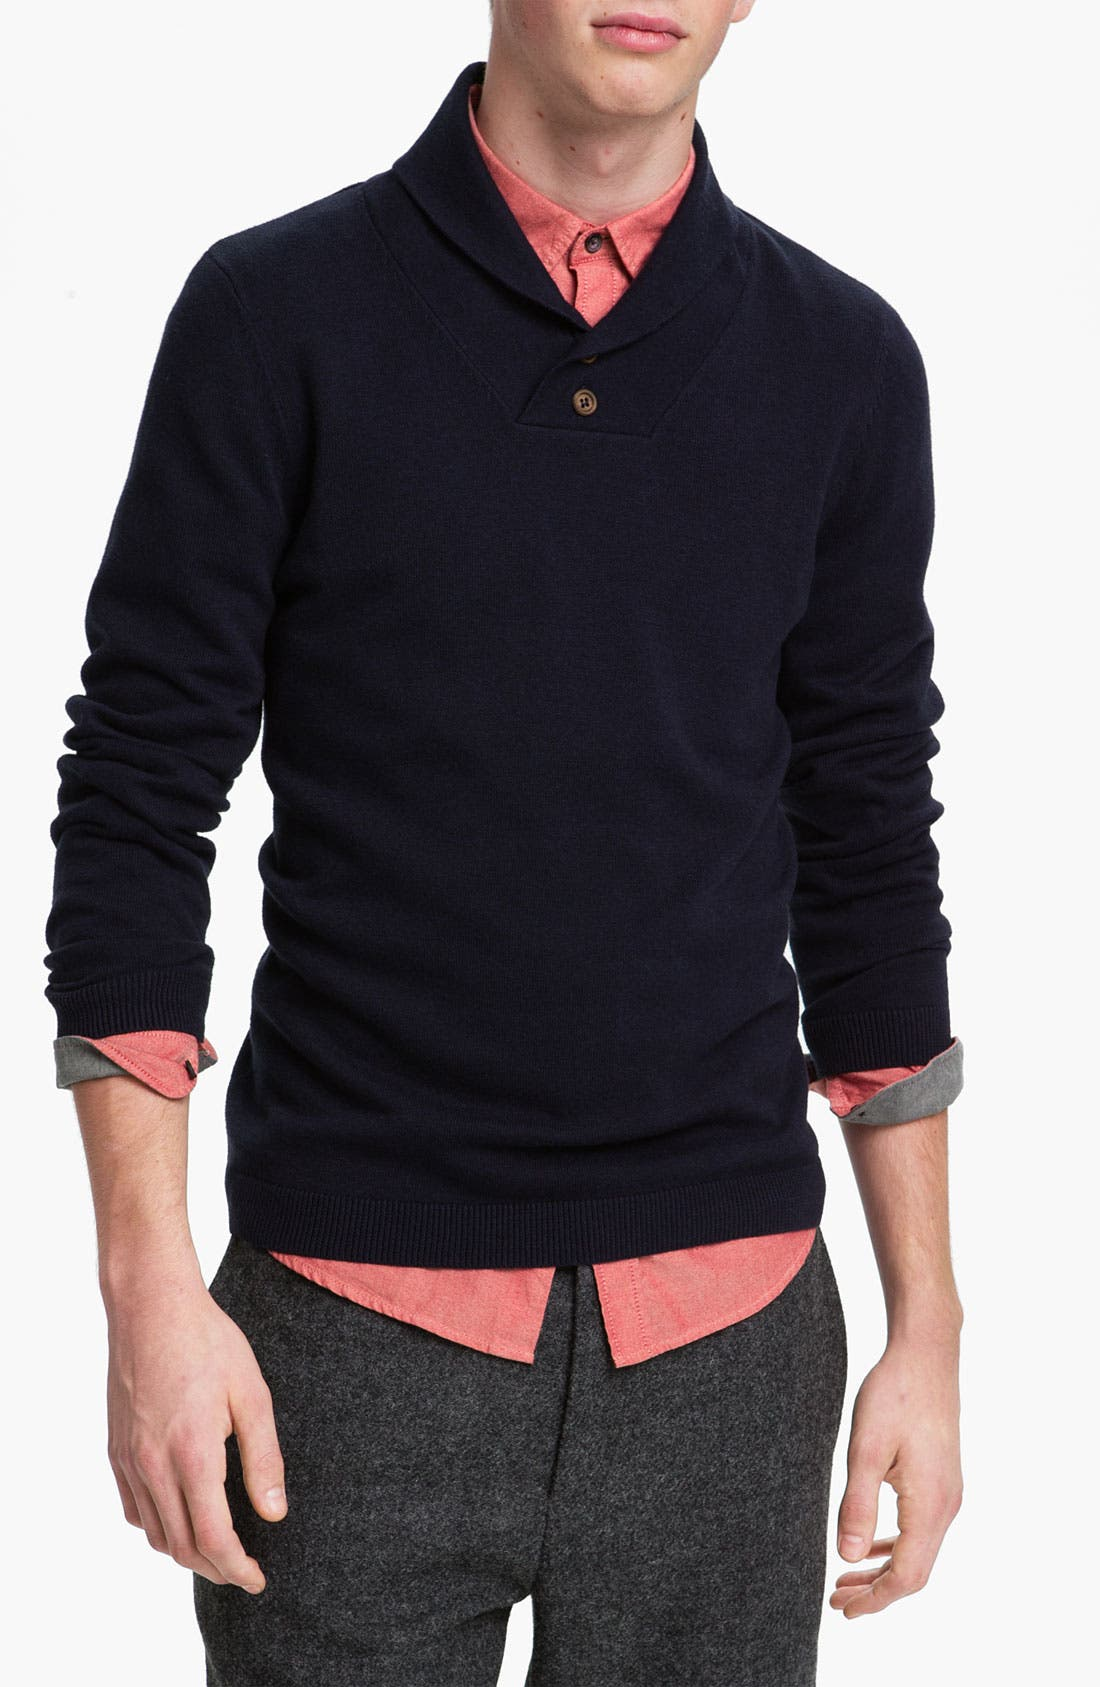 Alternate Image 1 Selected - Topman Shawl Collar Sweater